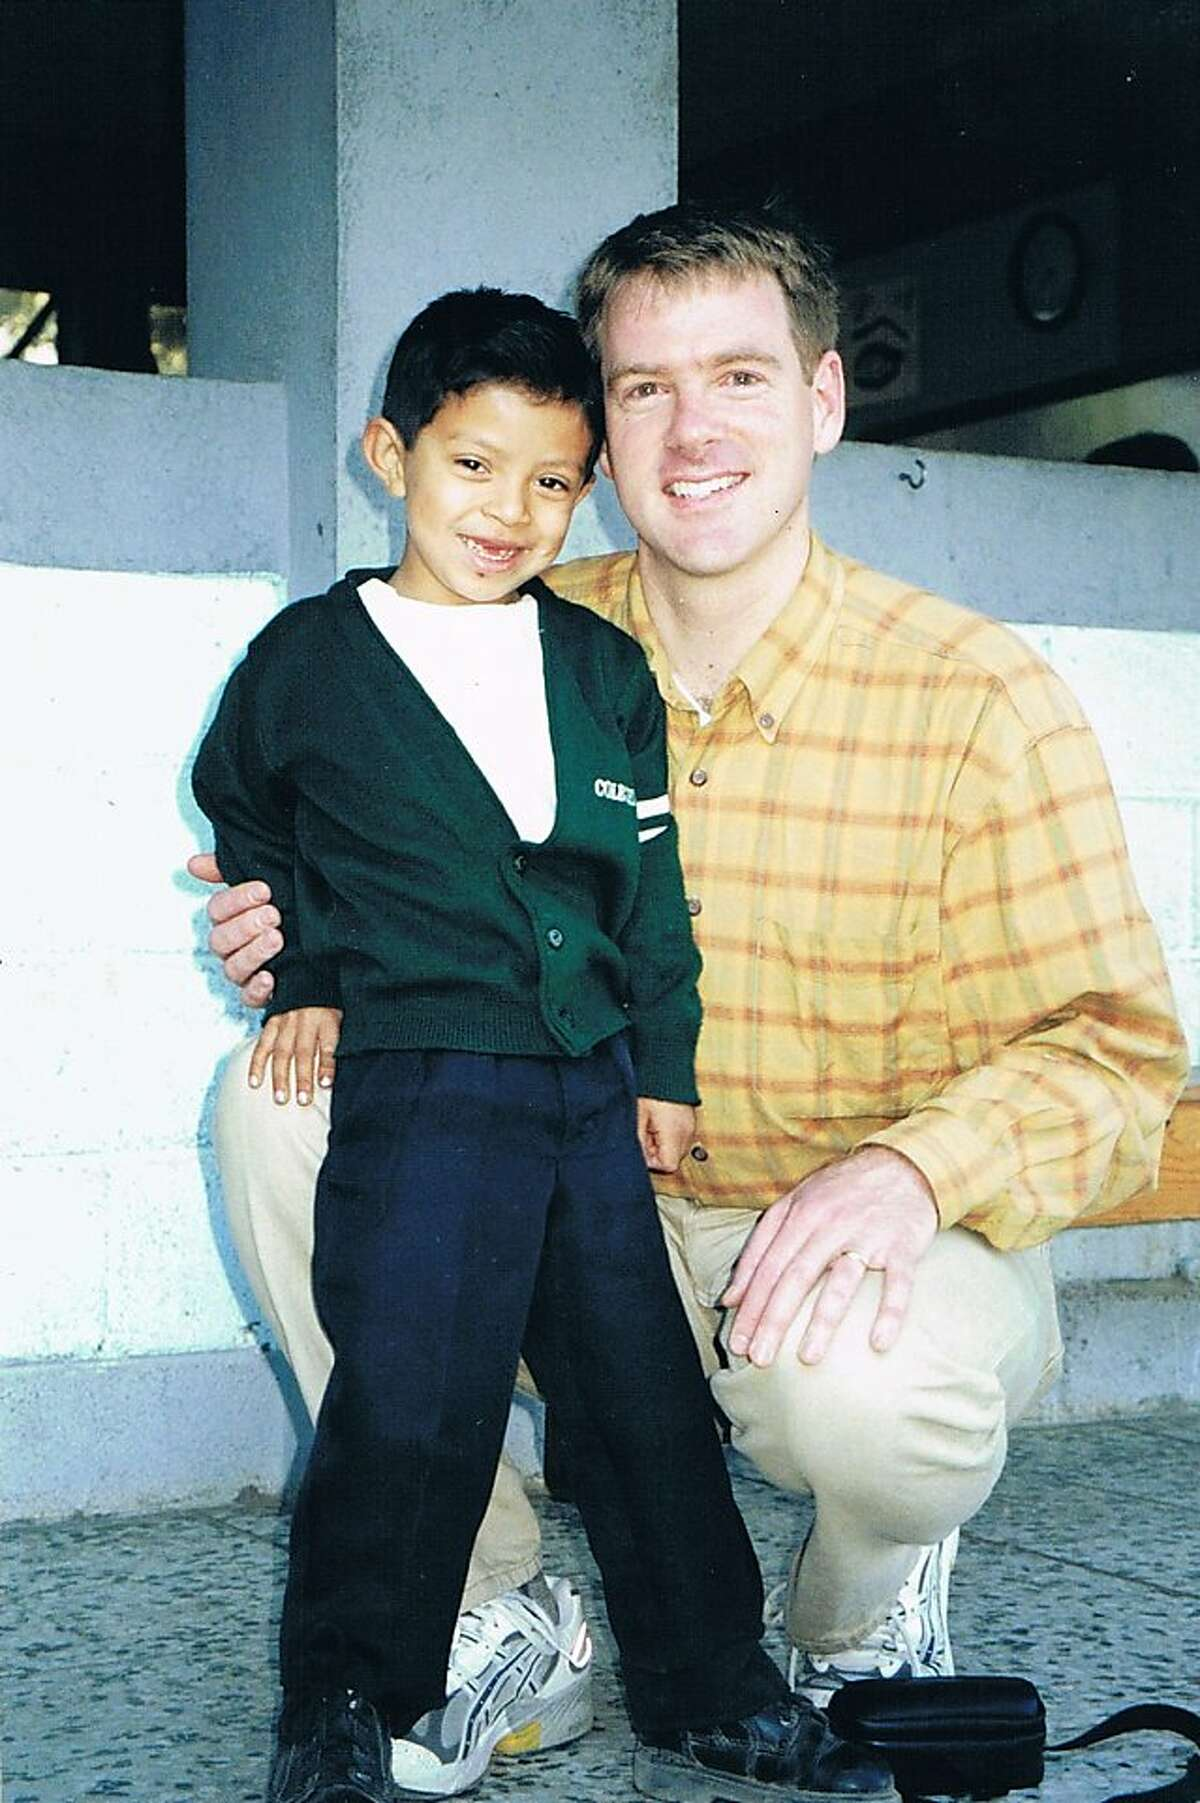 """Researcher Bruce Wydick poses with a child at the San Pedro La Laguna, Guatemala Compassion International site that was included in the study """"Does International Child Sponsorship Work? A Six-Country Study of Impacts on Adult Life Outcomes"""". Wydick is the lead author of the study, which was published in the April issue of the Journal of Political Economy."""